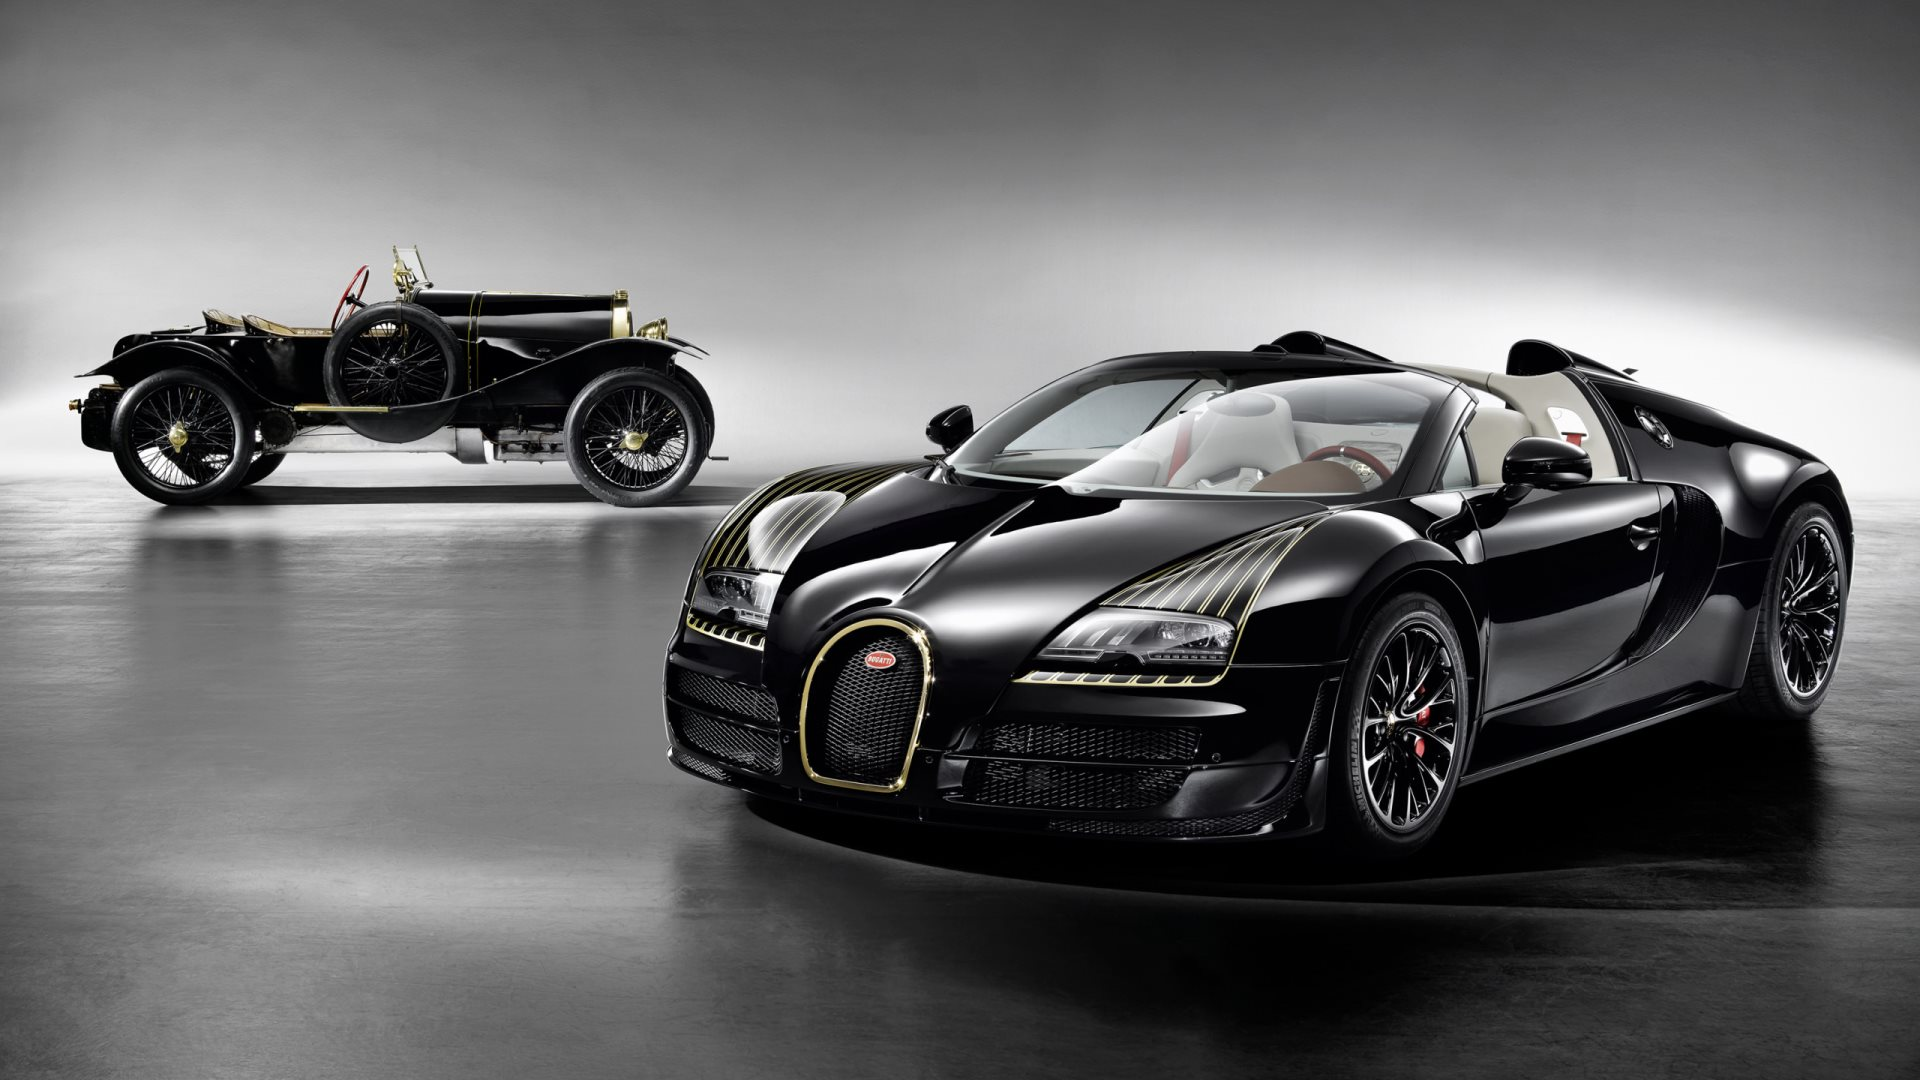 bugatti veyron grand sport vitesse black bess wallpapers in hd 4k and wide s. Black Bedroom Furniture Sets. Home Design Ideas